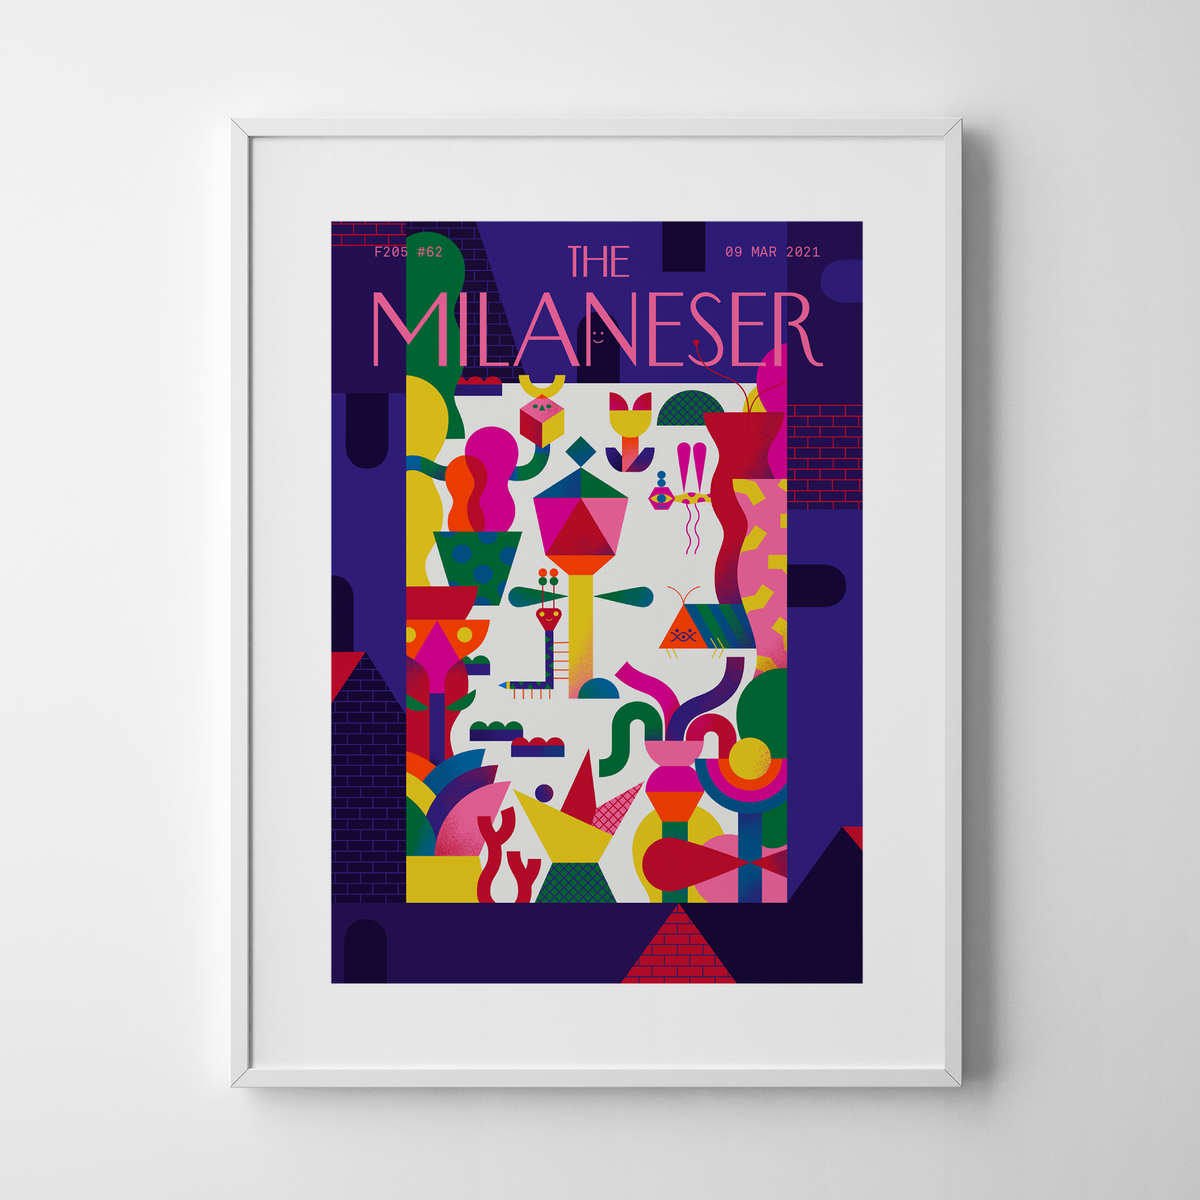 Image of The Milaneser #62